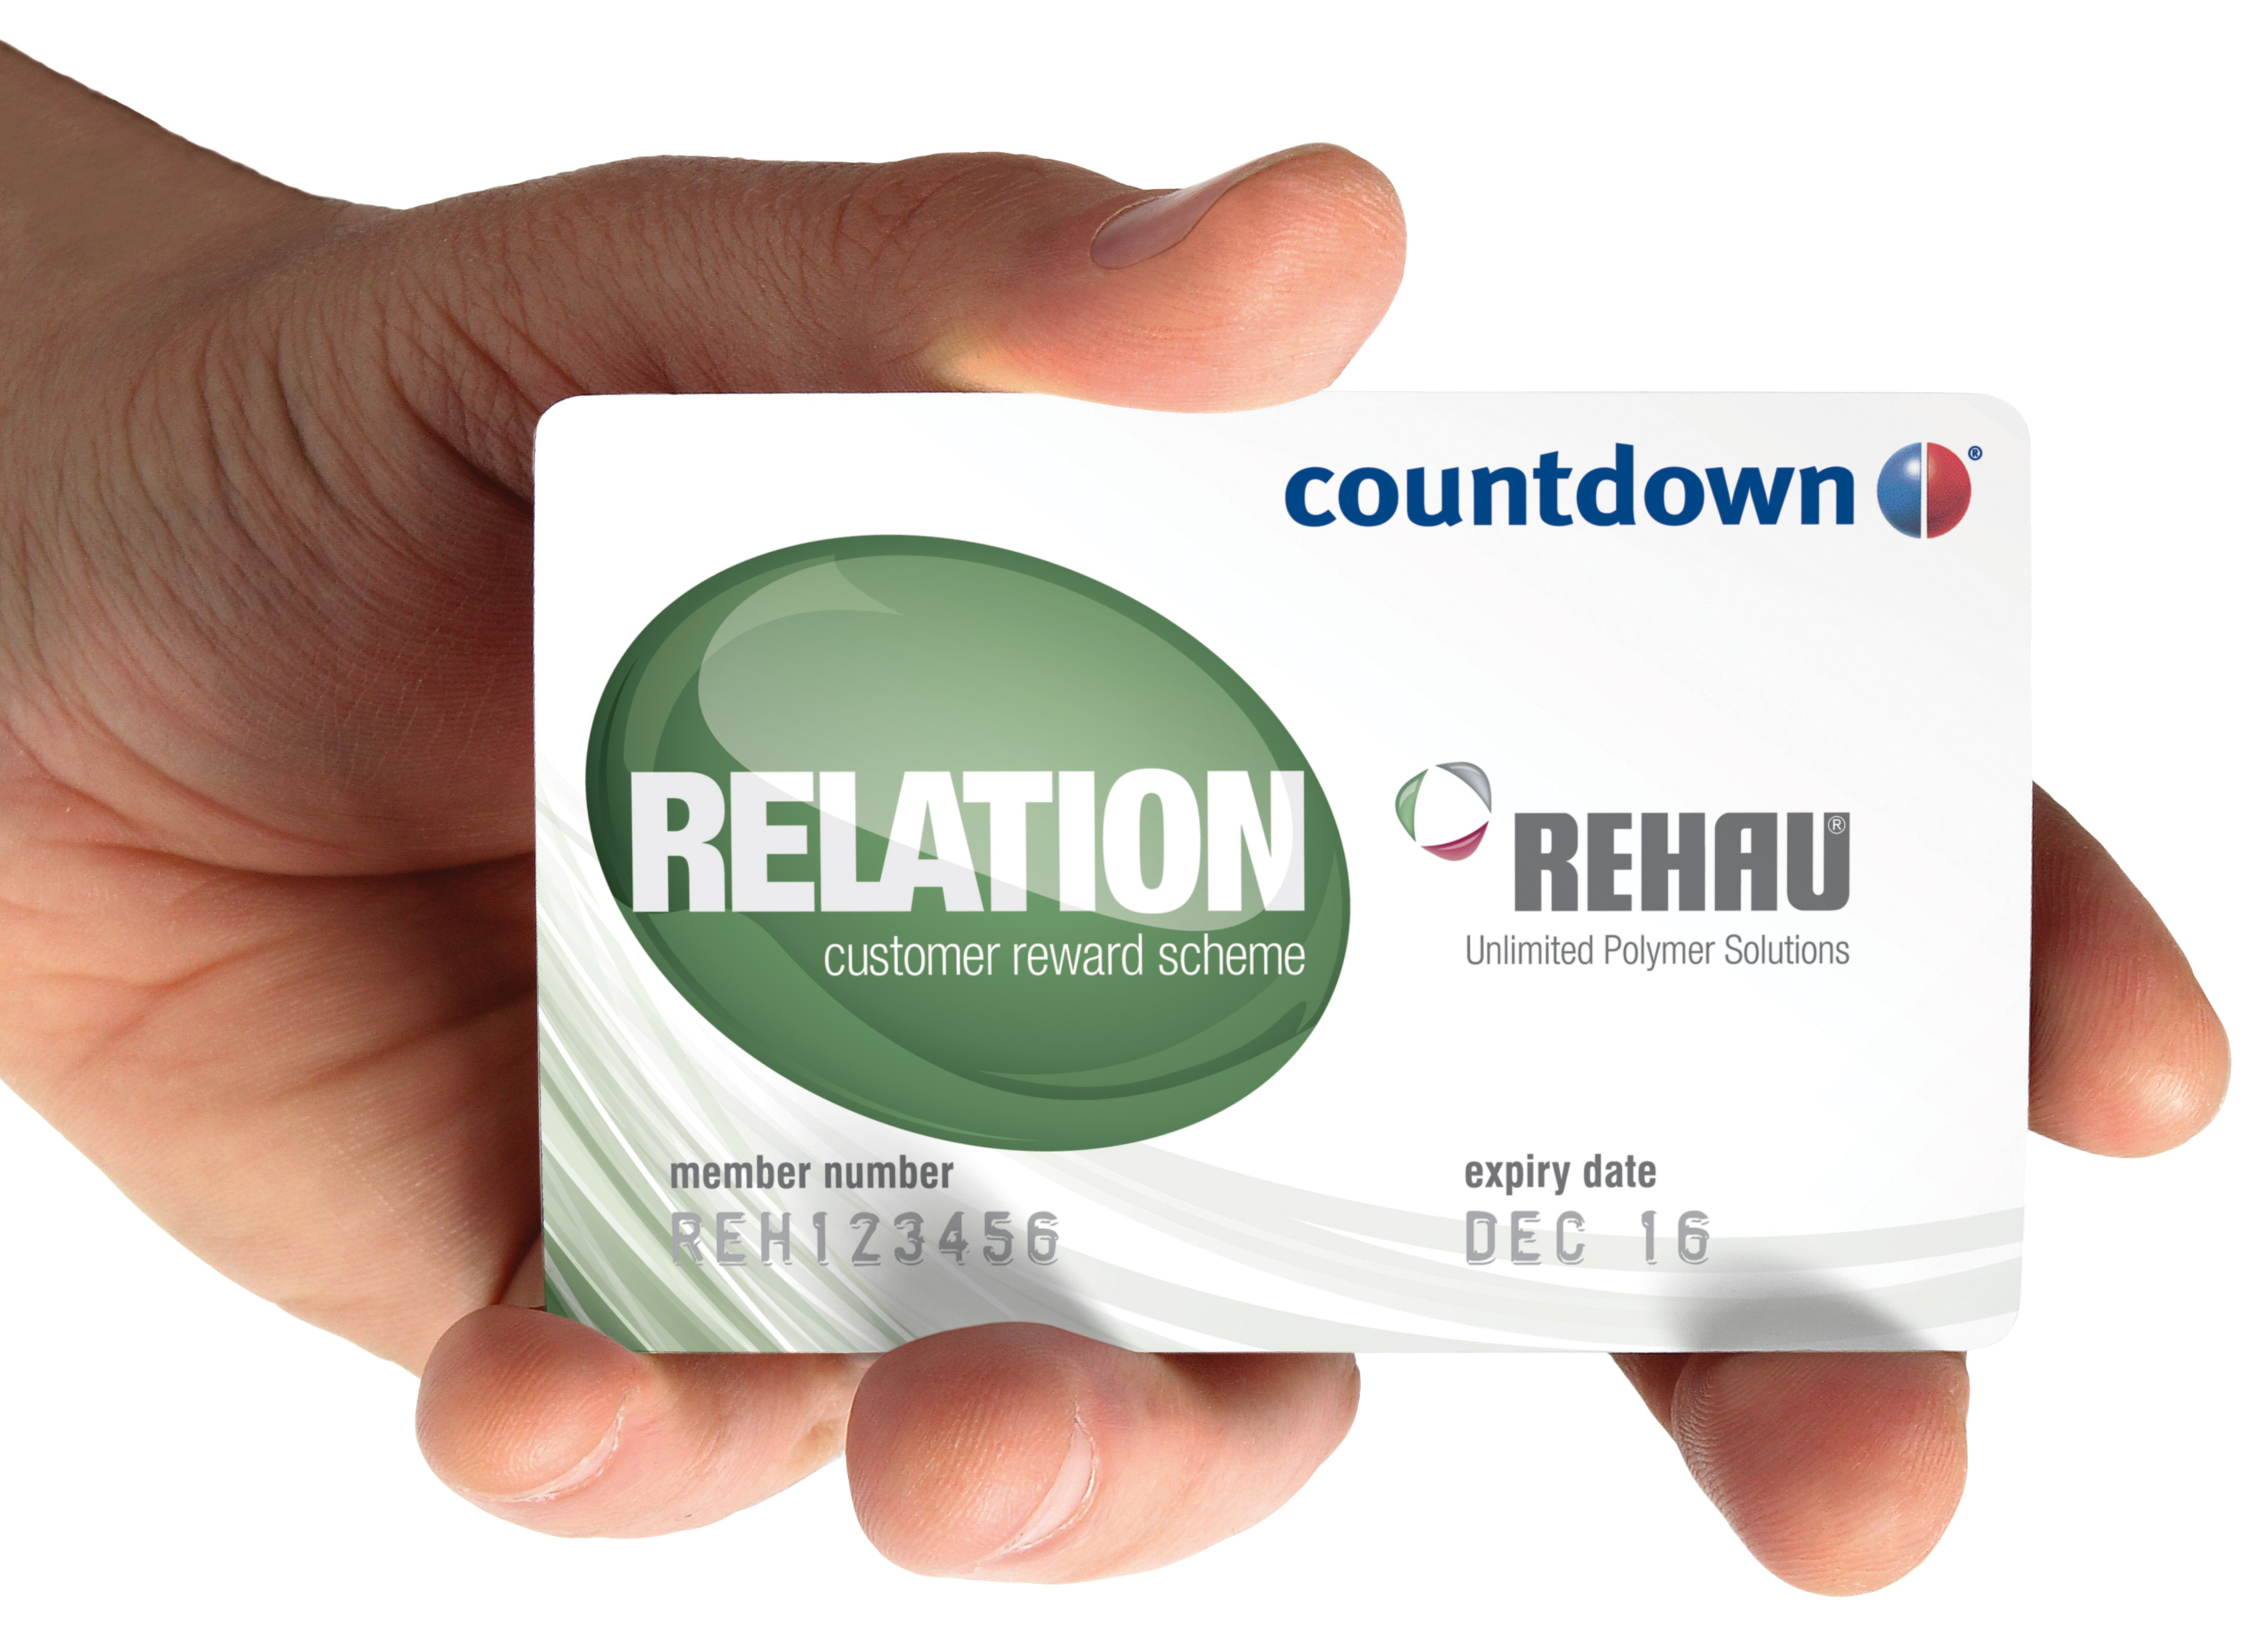 REHAU LAUNCHES CUSTOMER LOYALTY PROGRAMME AT FIT SHOW